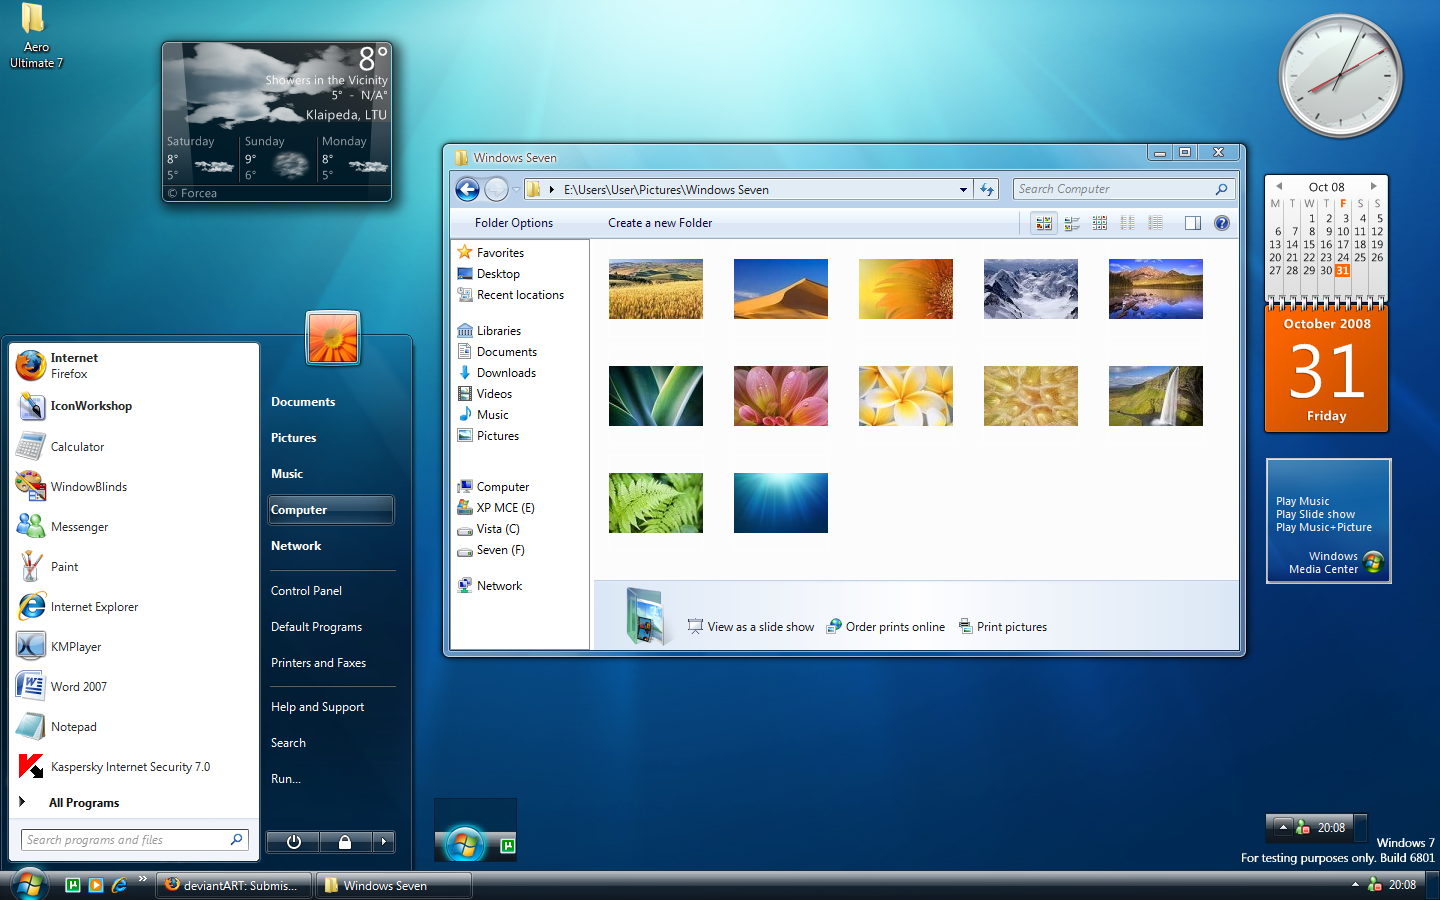 windows 7 ultimate widgets and start menu